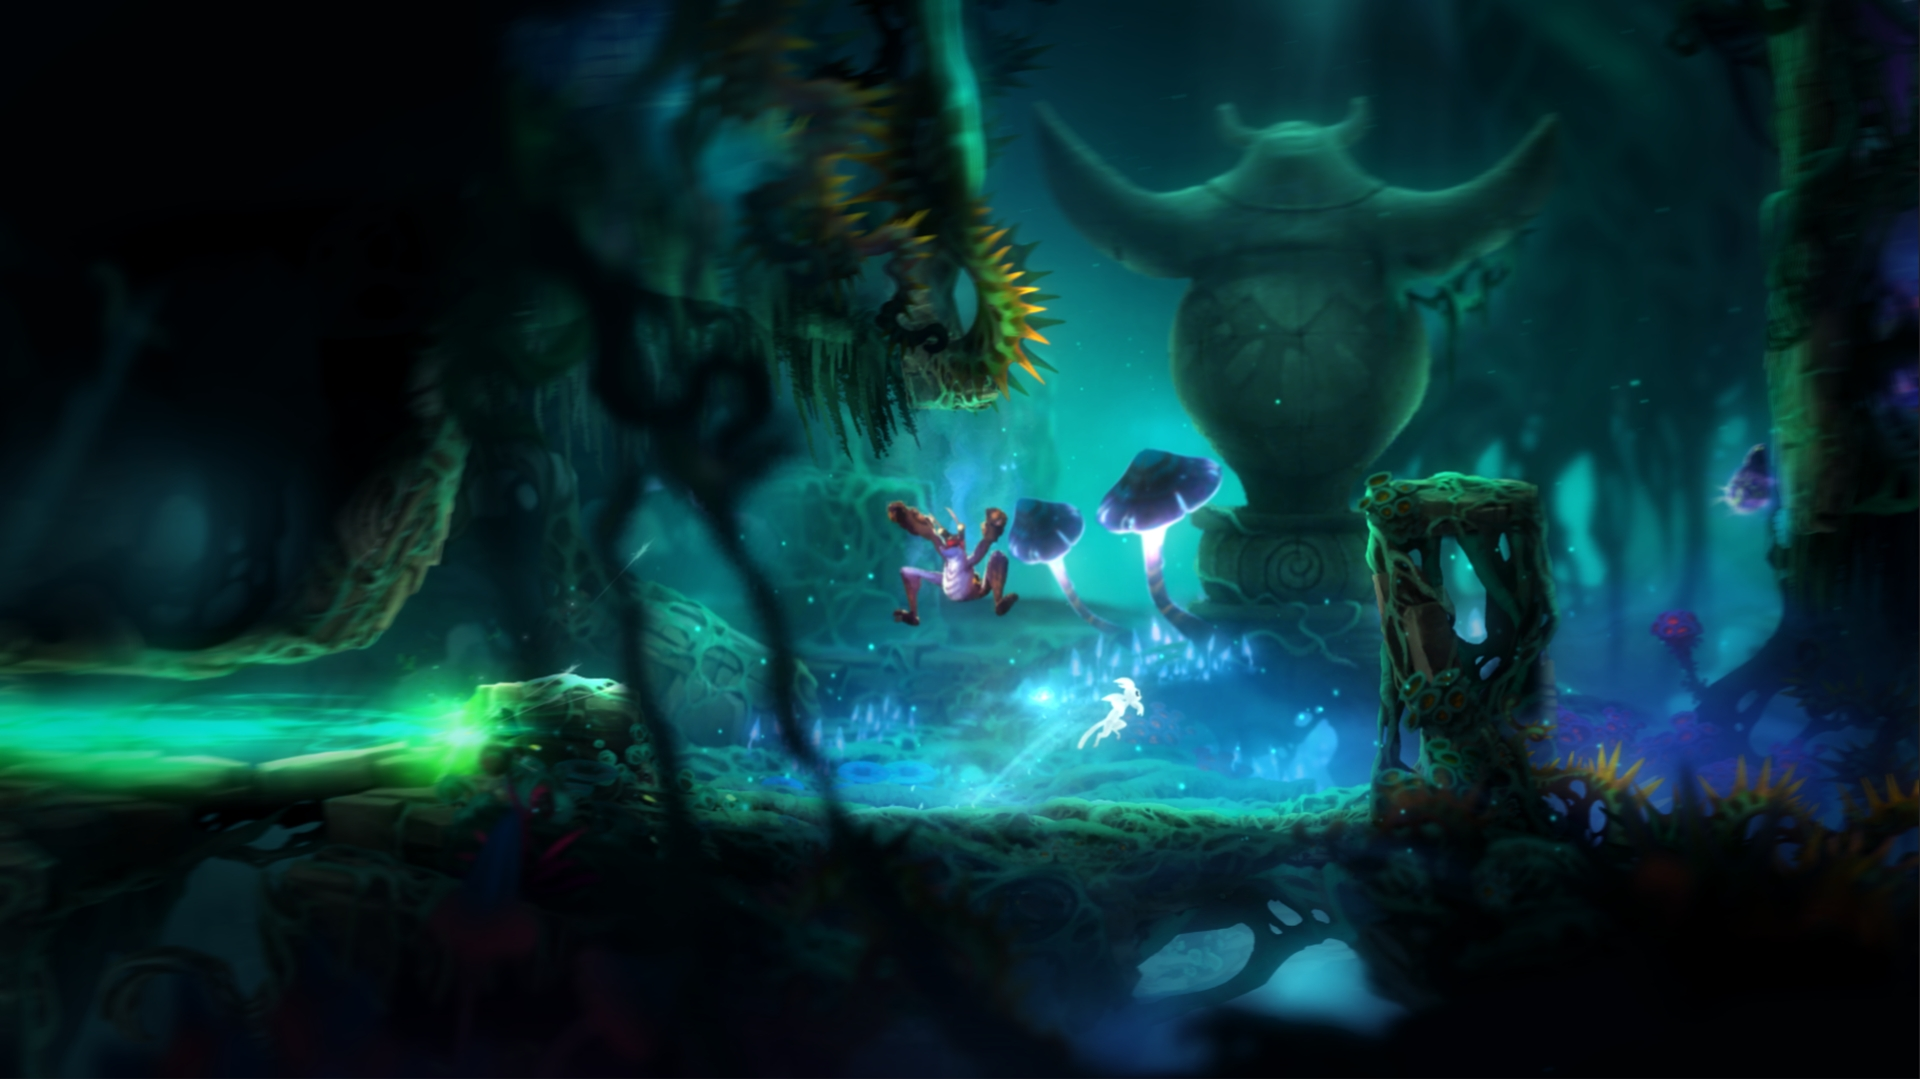 Screenshot for the game Ori and the Blind Forest: Definitive Edition (2016) RS | Repack from R.G. Mechanics